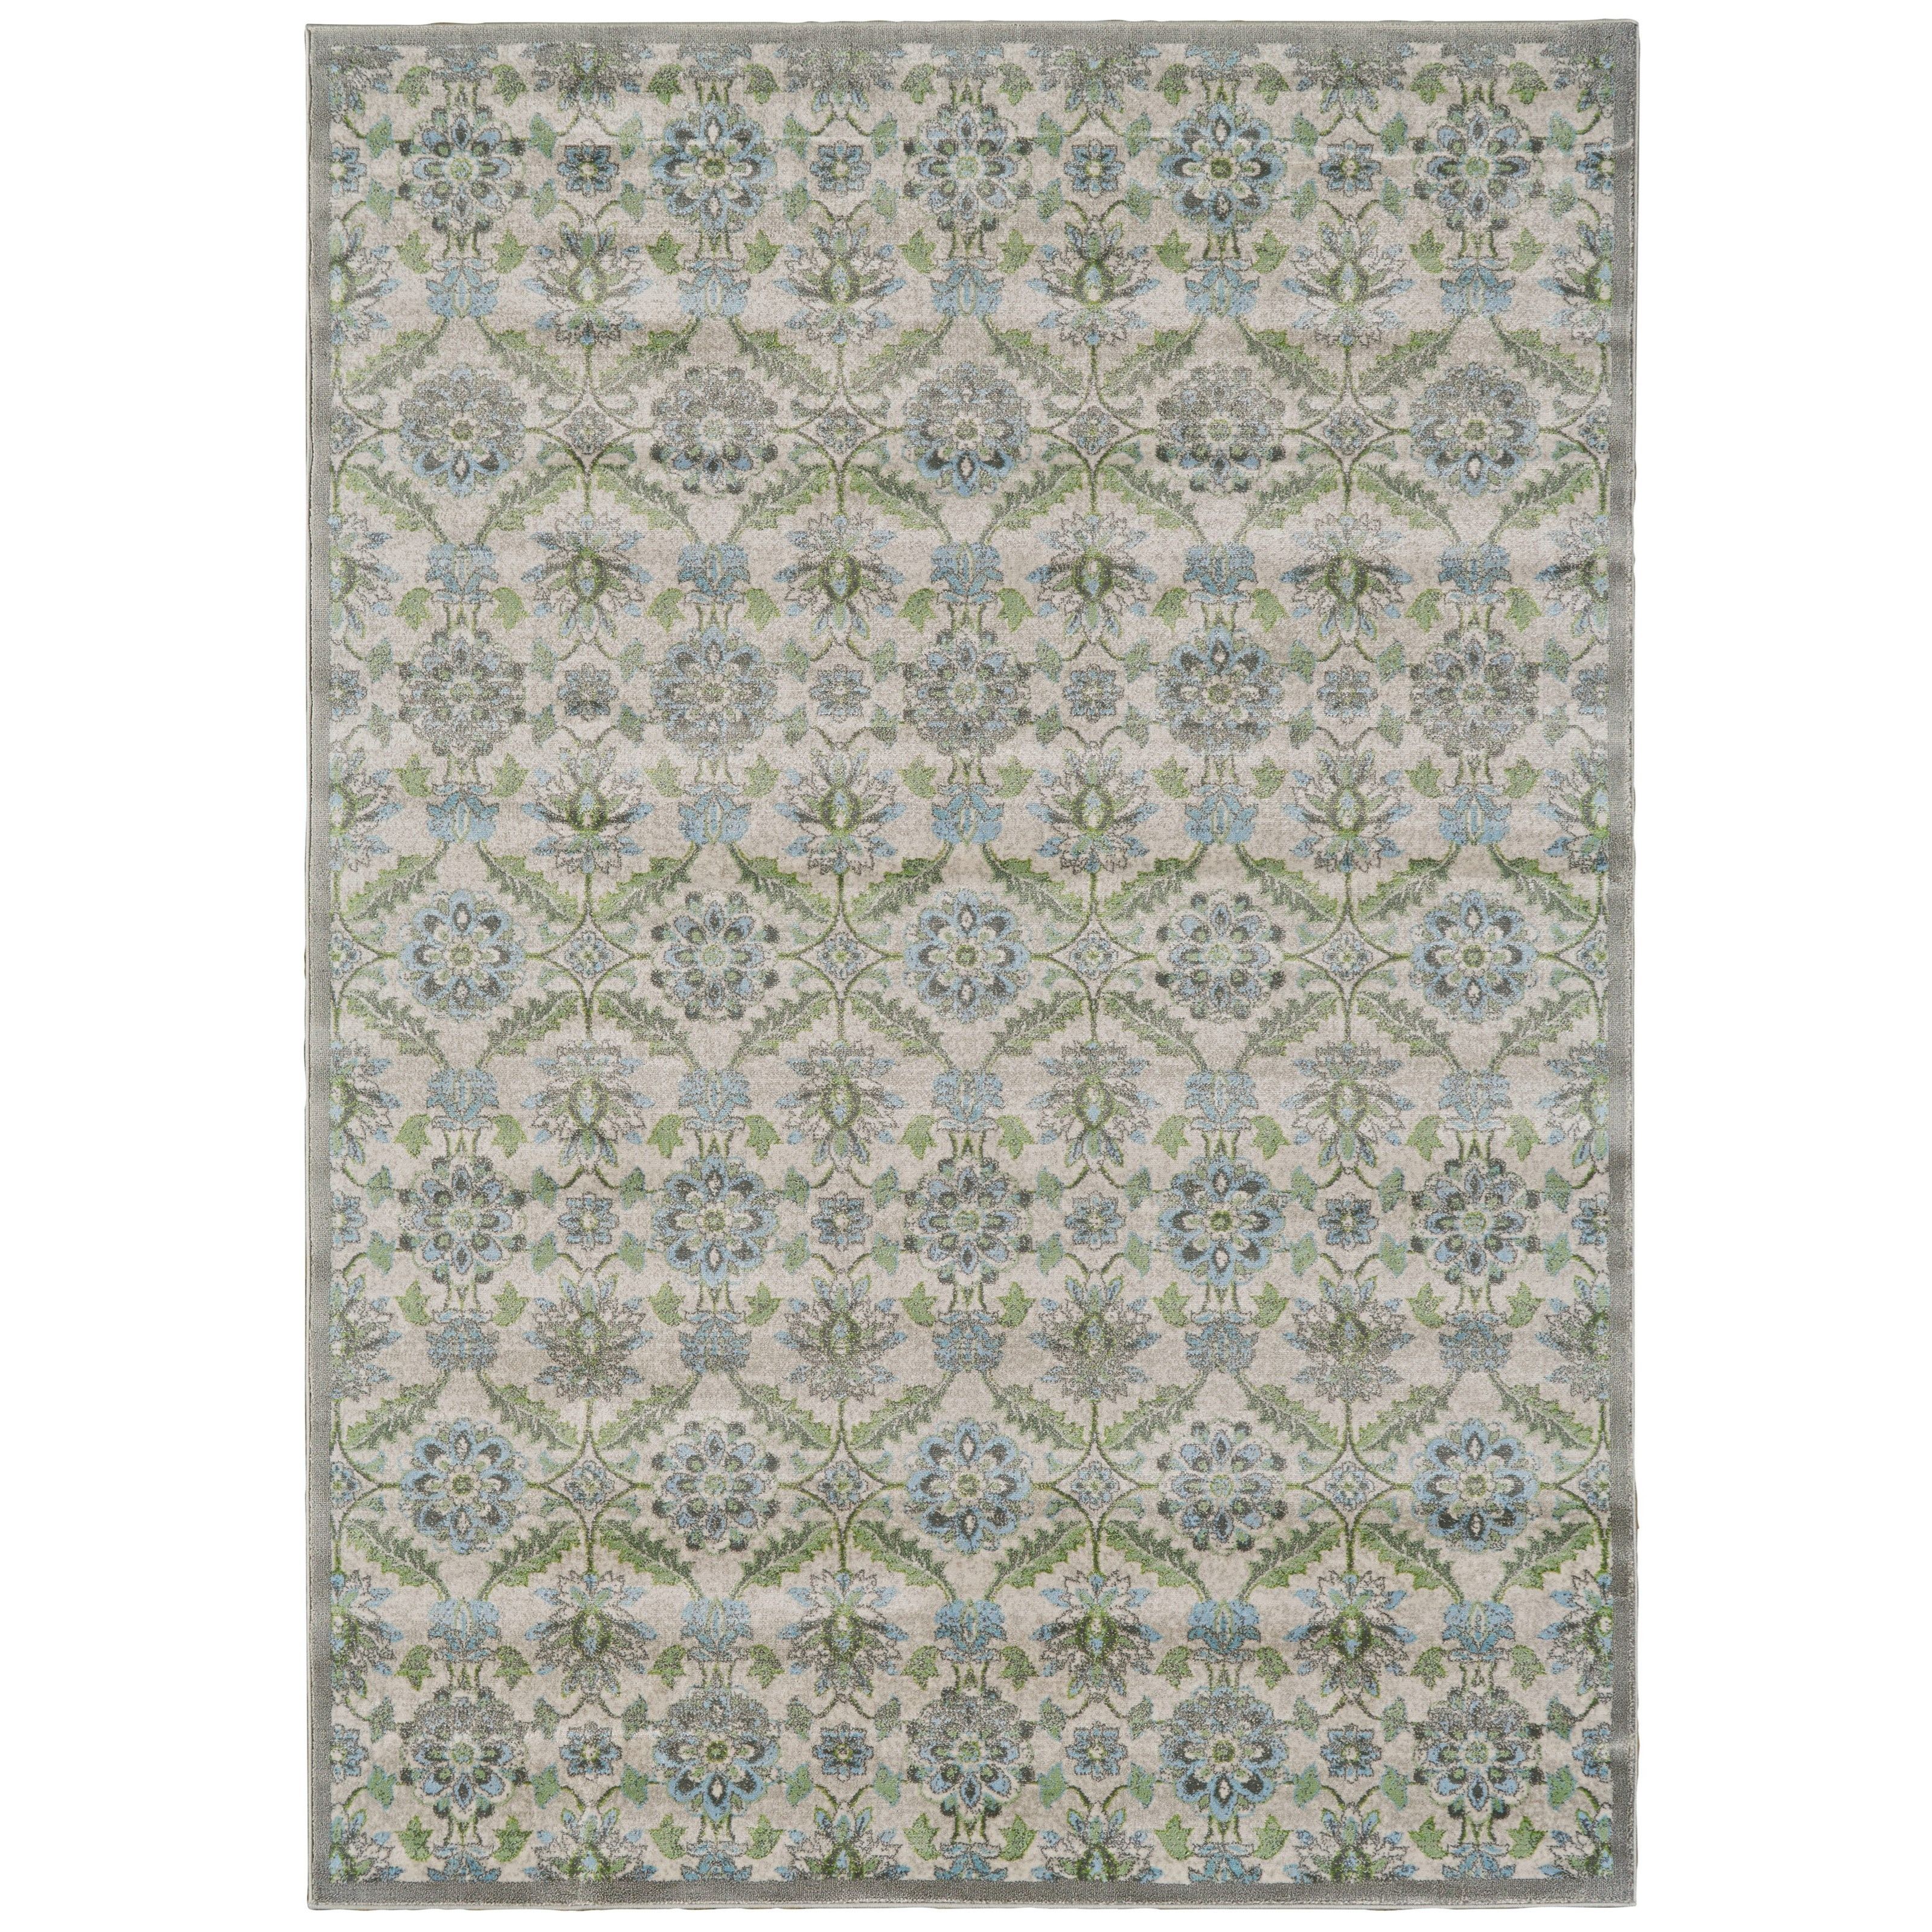 """Katari Birch/Taupe 10' X 13'-2"""" Area Rug by Feizy Rugs at Jacksonville Furniture Mart"""